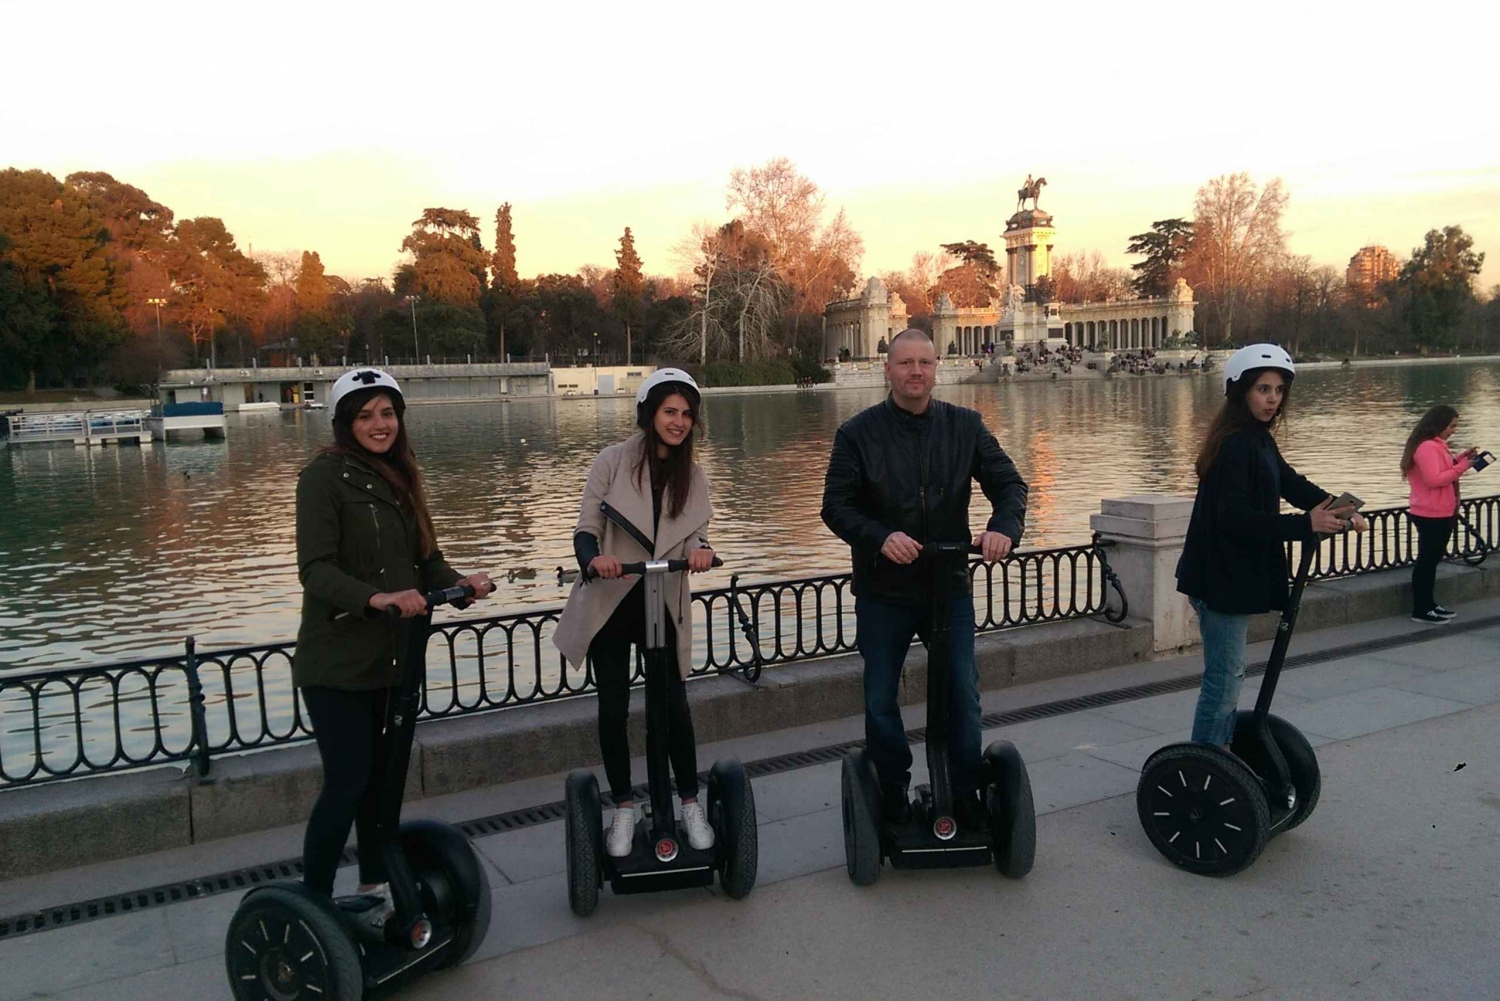 Madrid El Retiro Park: 1.5-Hour Segway Tour